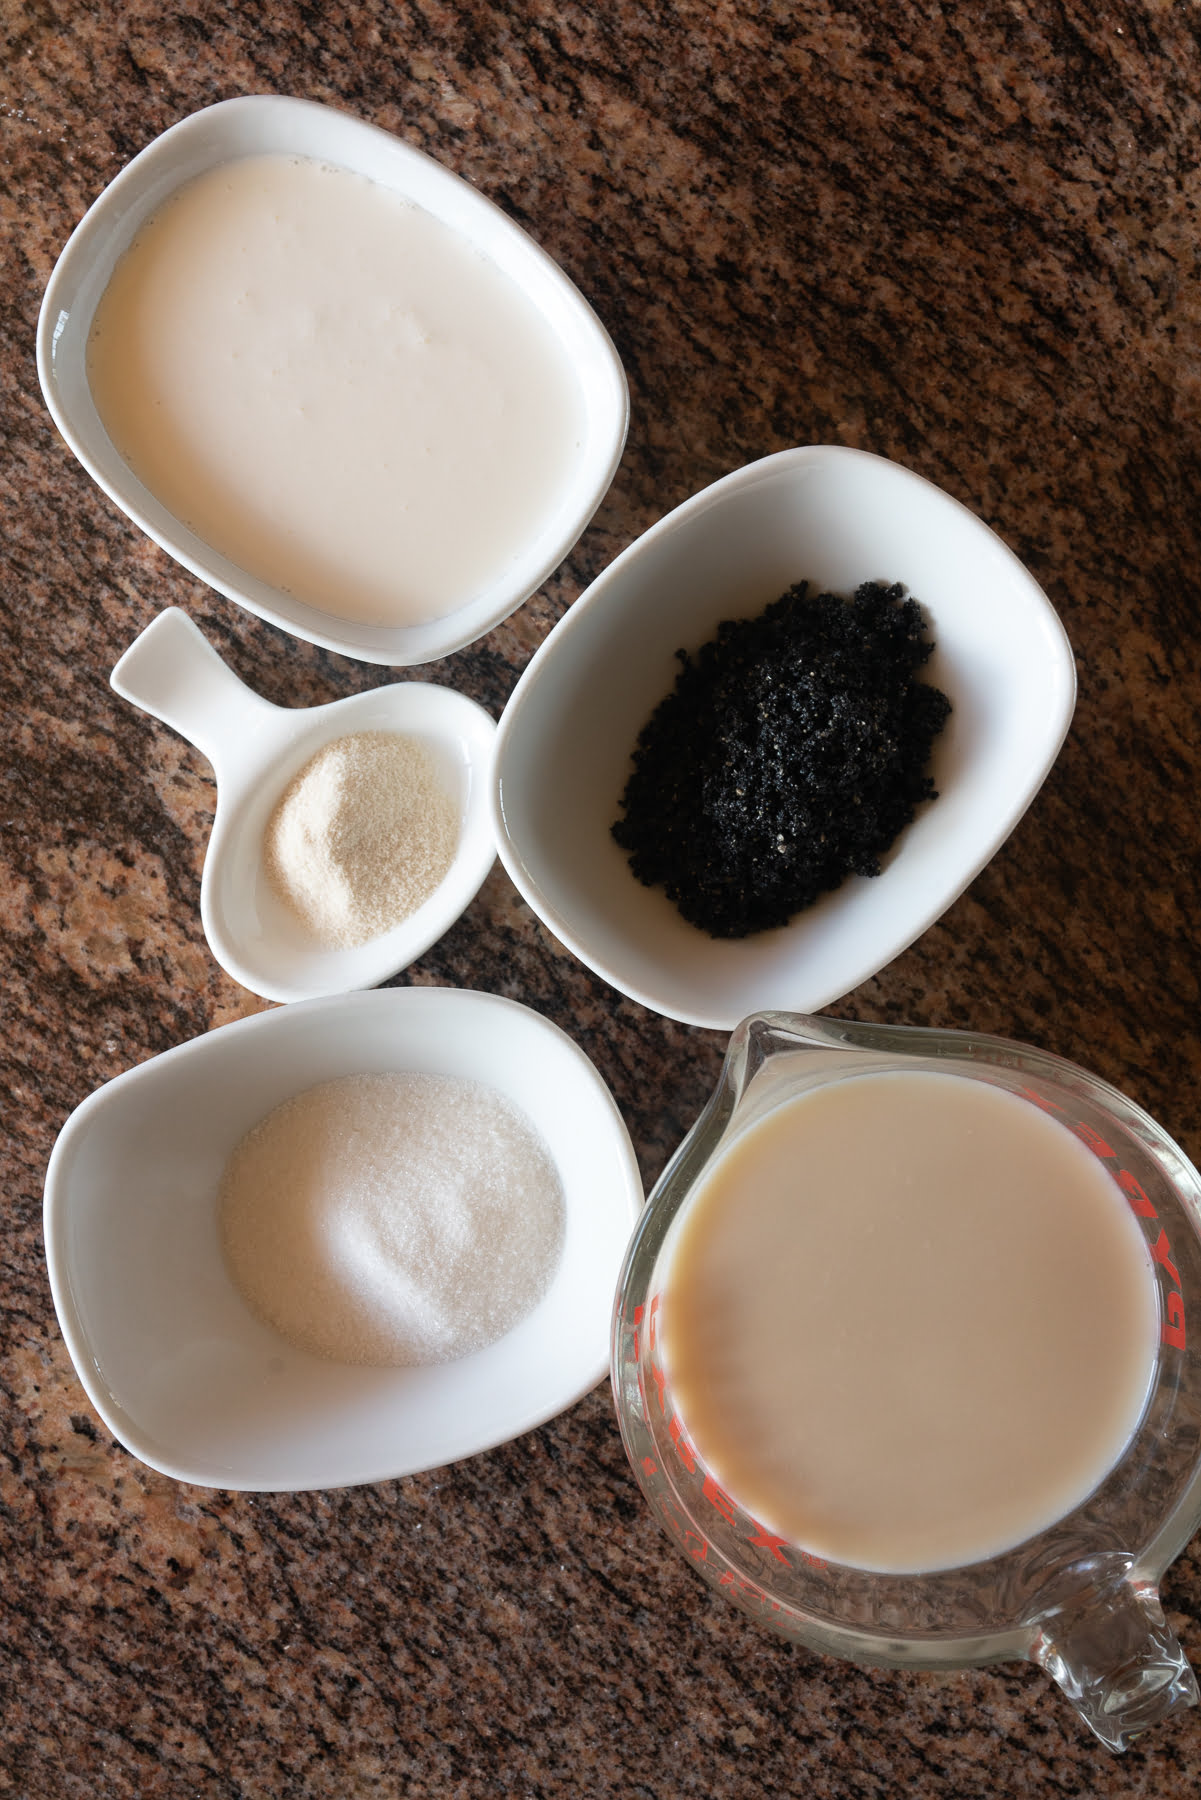 Ingredients for black sesame pudding laid out on the counter (black sesame paste, heavy whipping cream, sugar, agar agar powder, whole milk (or soy milk), and sugar.